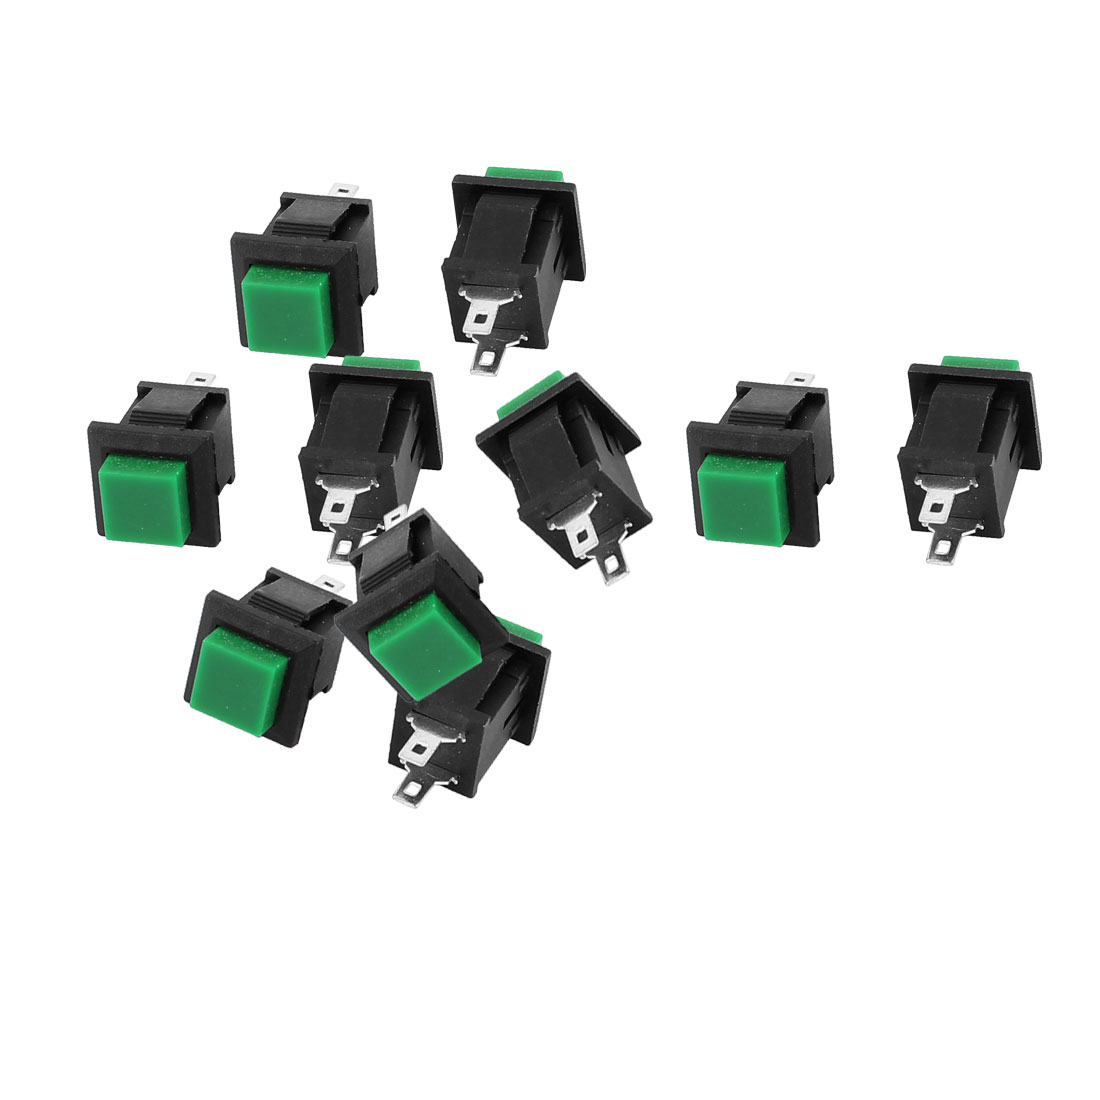 10pcs AC 250V 1A 2 Terminals NC SPST Momentary Square Head Push Button Switch Green